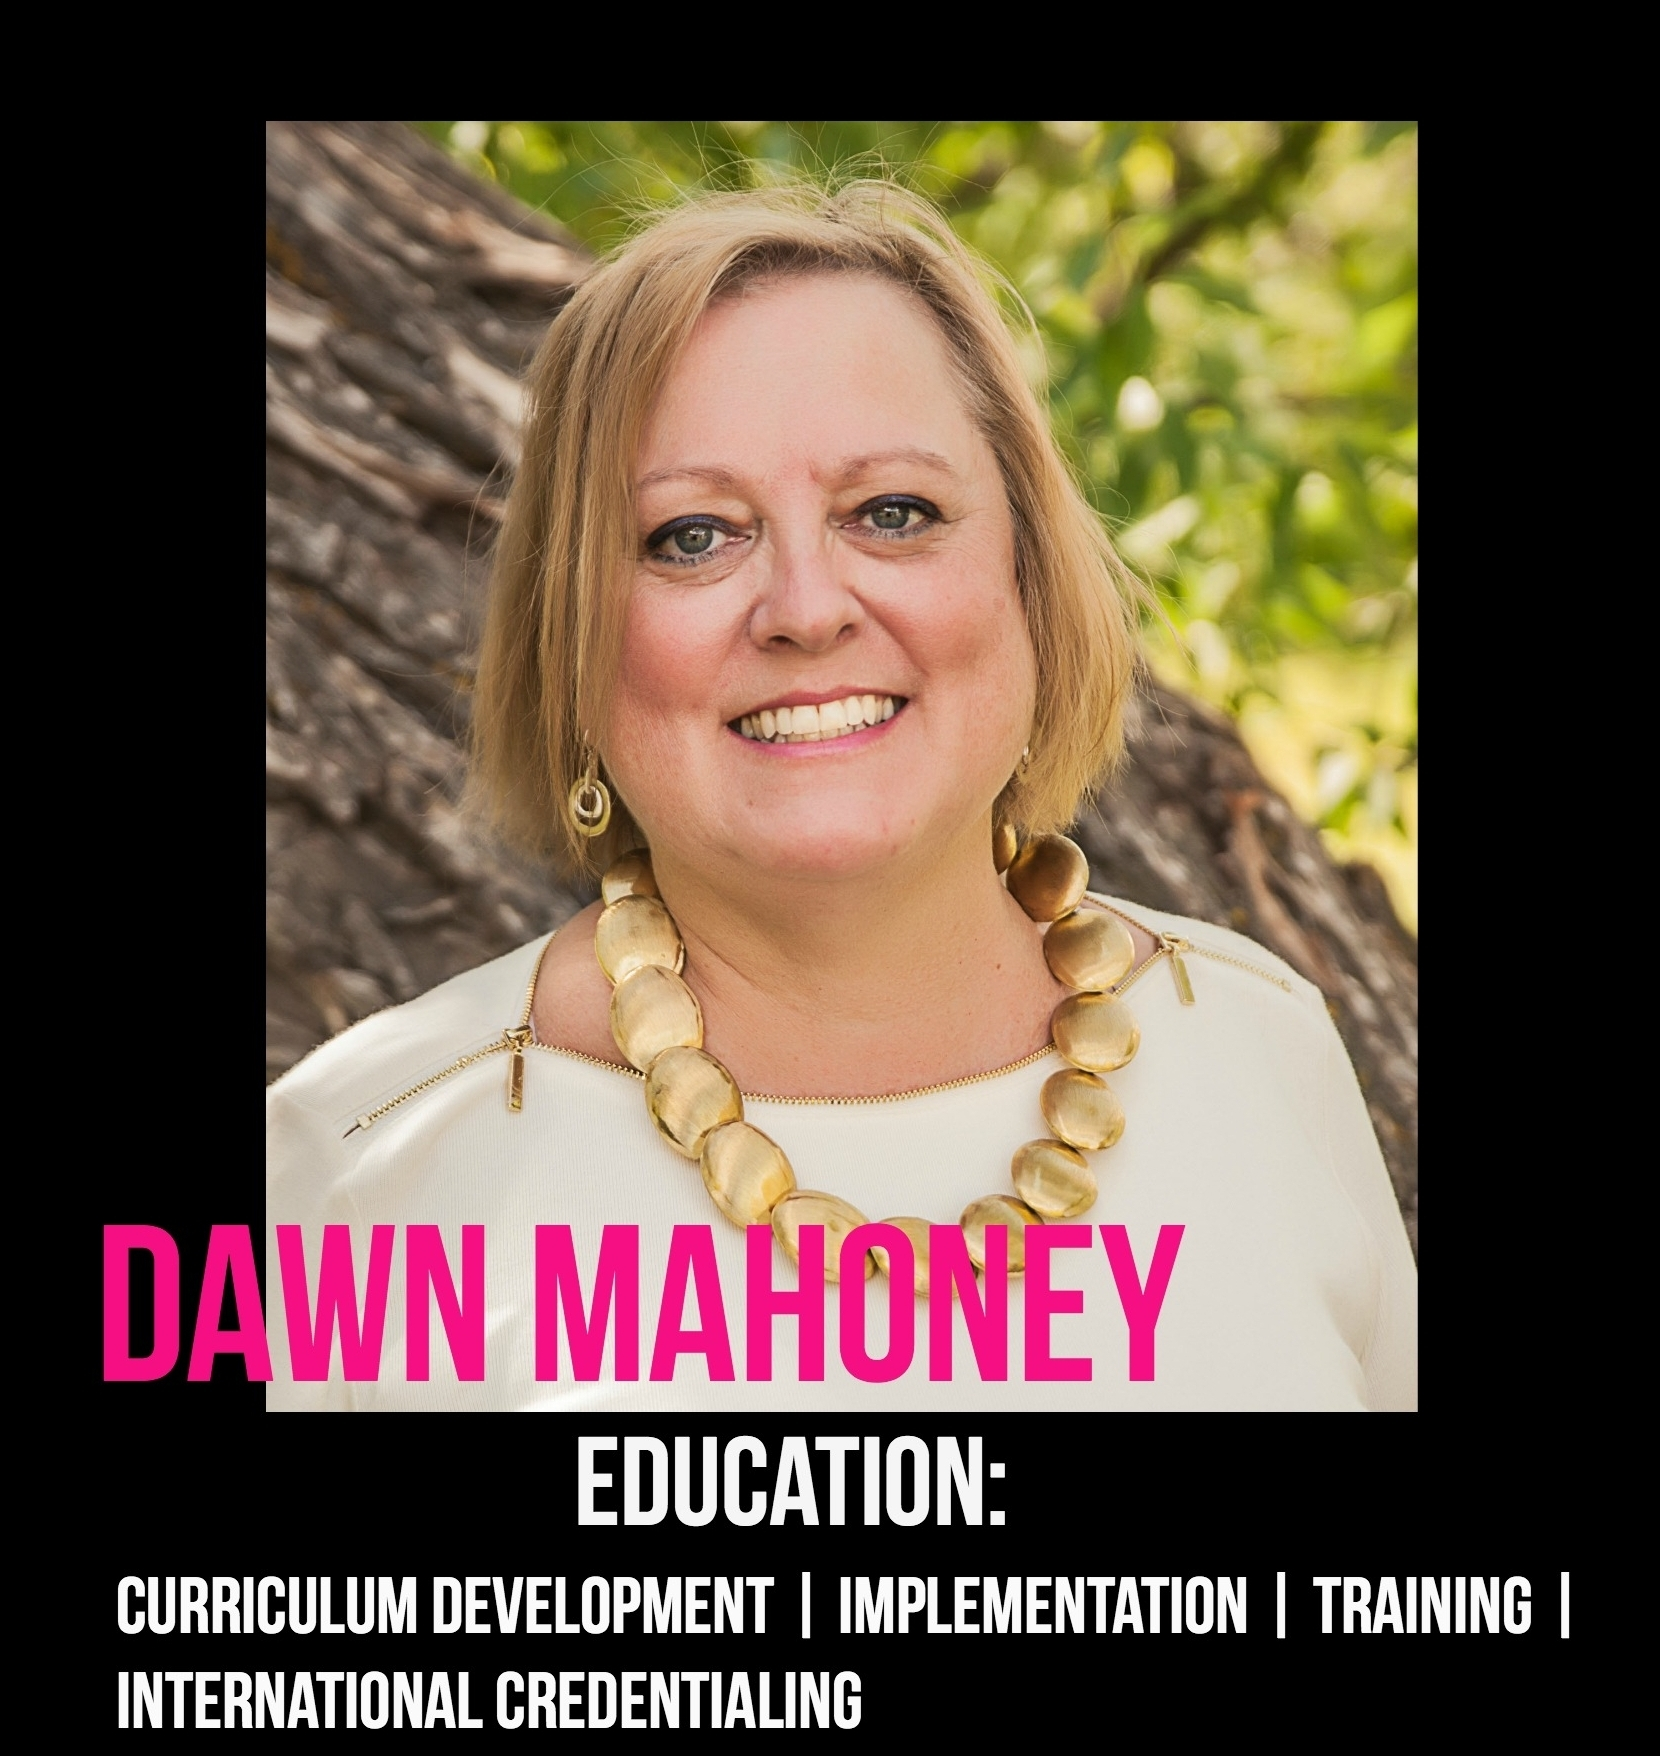 THE JILLS OF ALL TRADES™ Dawn Mahoney Adult Learning Expert